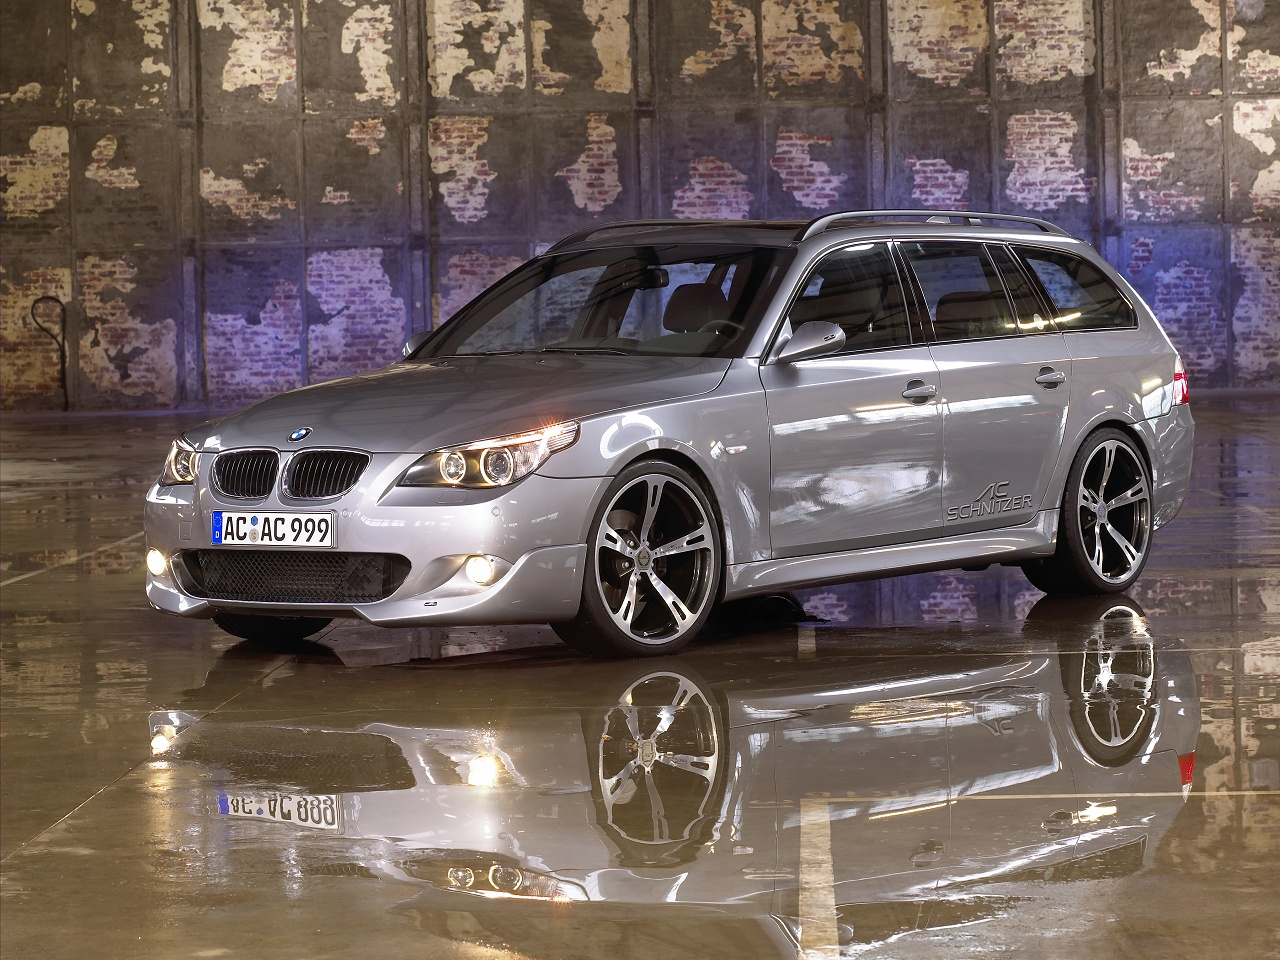 wallpaper 1280x960: BMW 5-series Touring/Sports Wagon by AC Schnitzer - left-front view